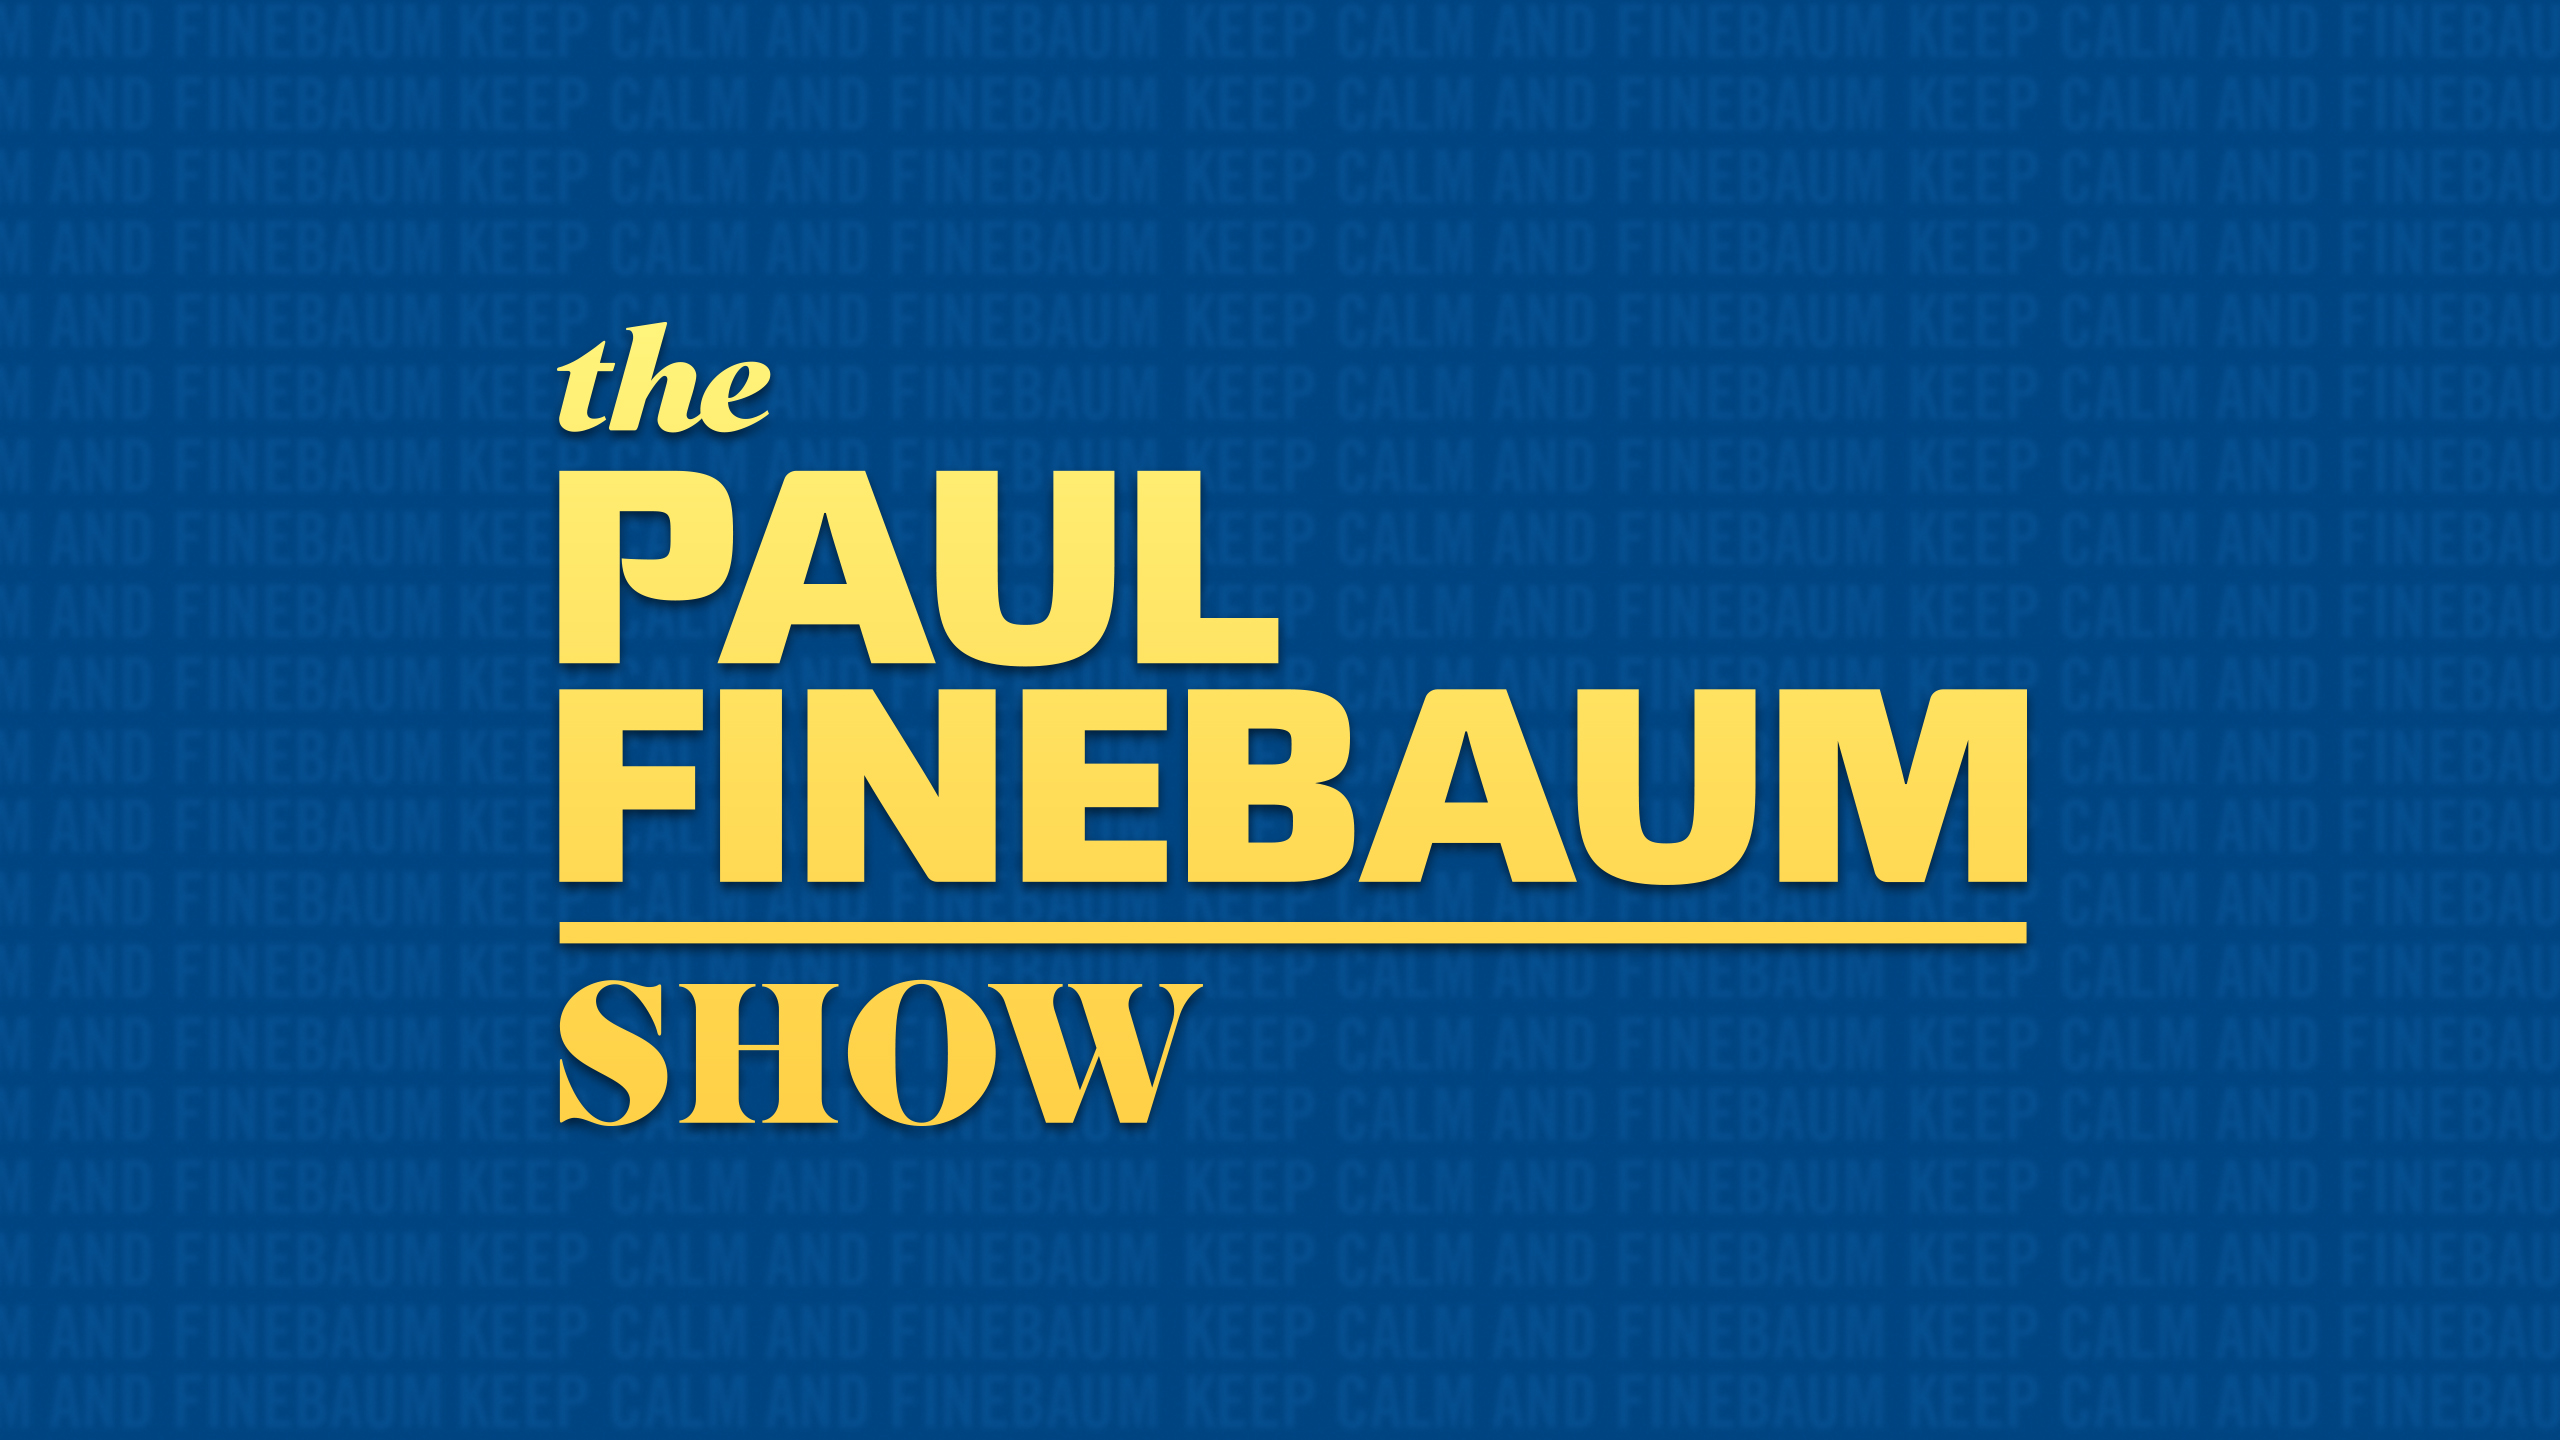 Fri, 12/14 - The Paul Finebaum Show